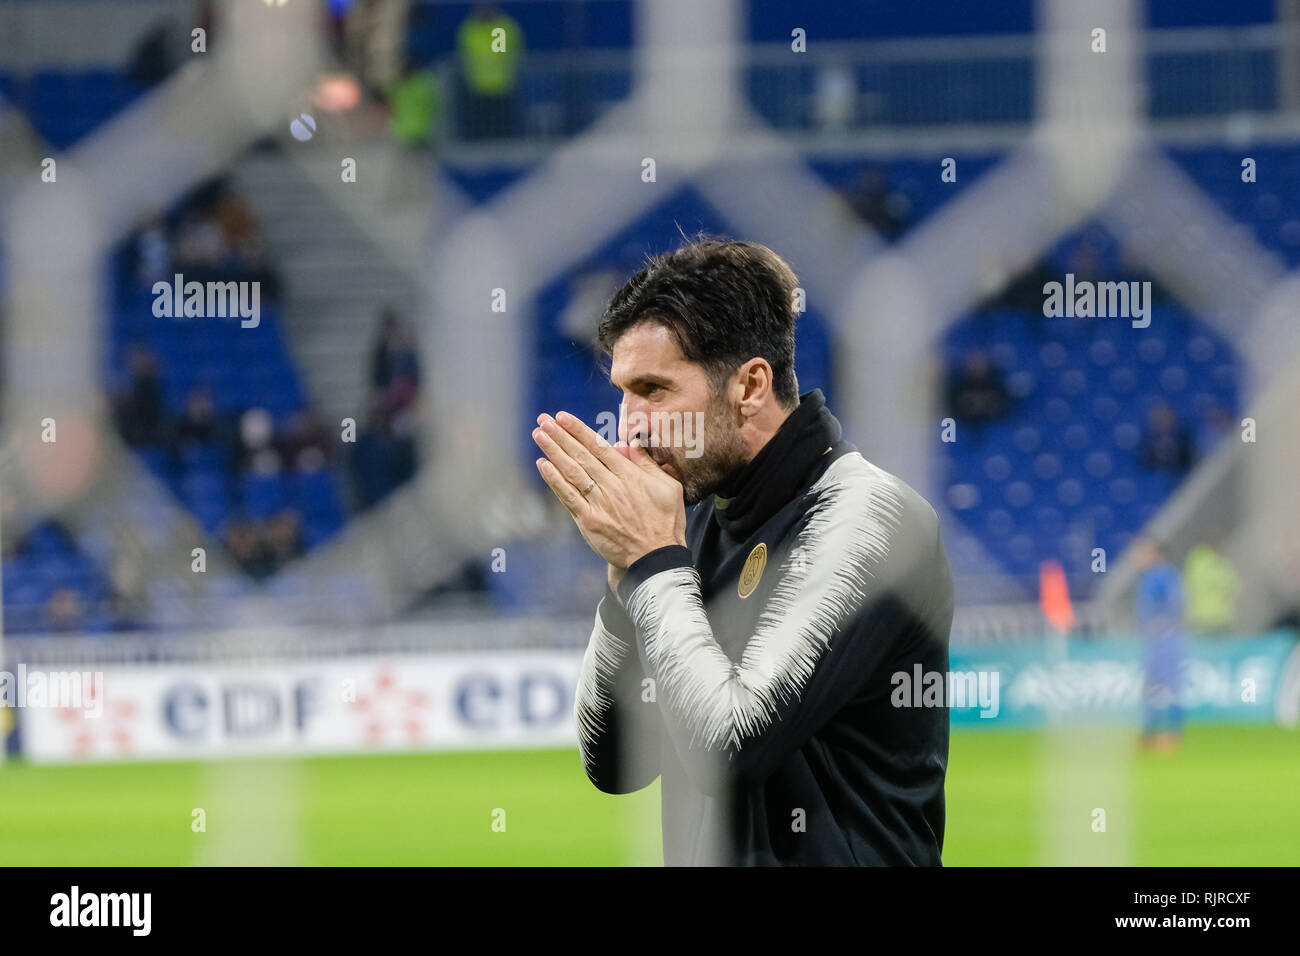 Gianluigi Buffon, goal at warming up rubs his hands. Photo taken through the nets of the goal cage. - Stock Image